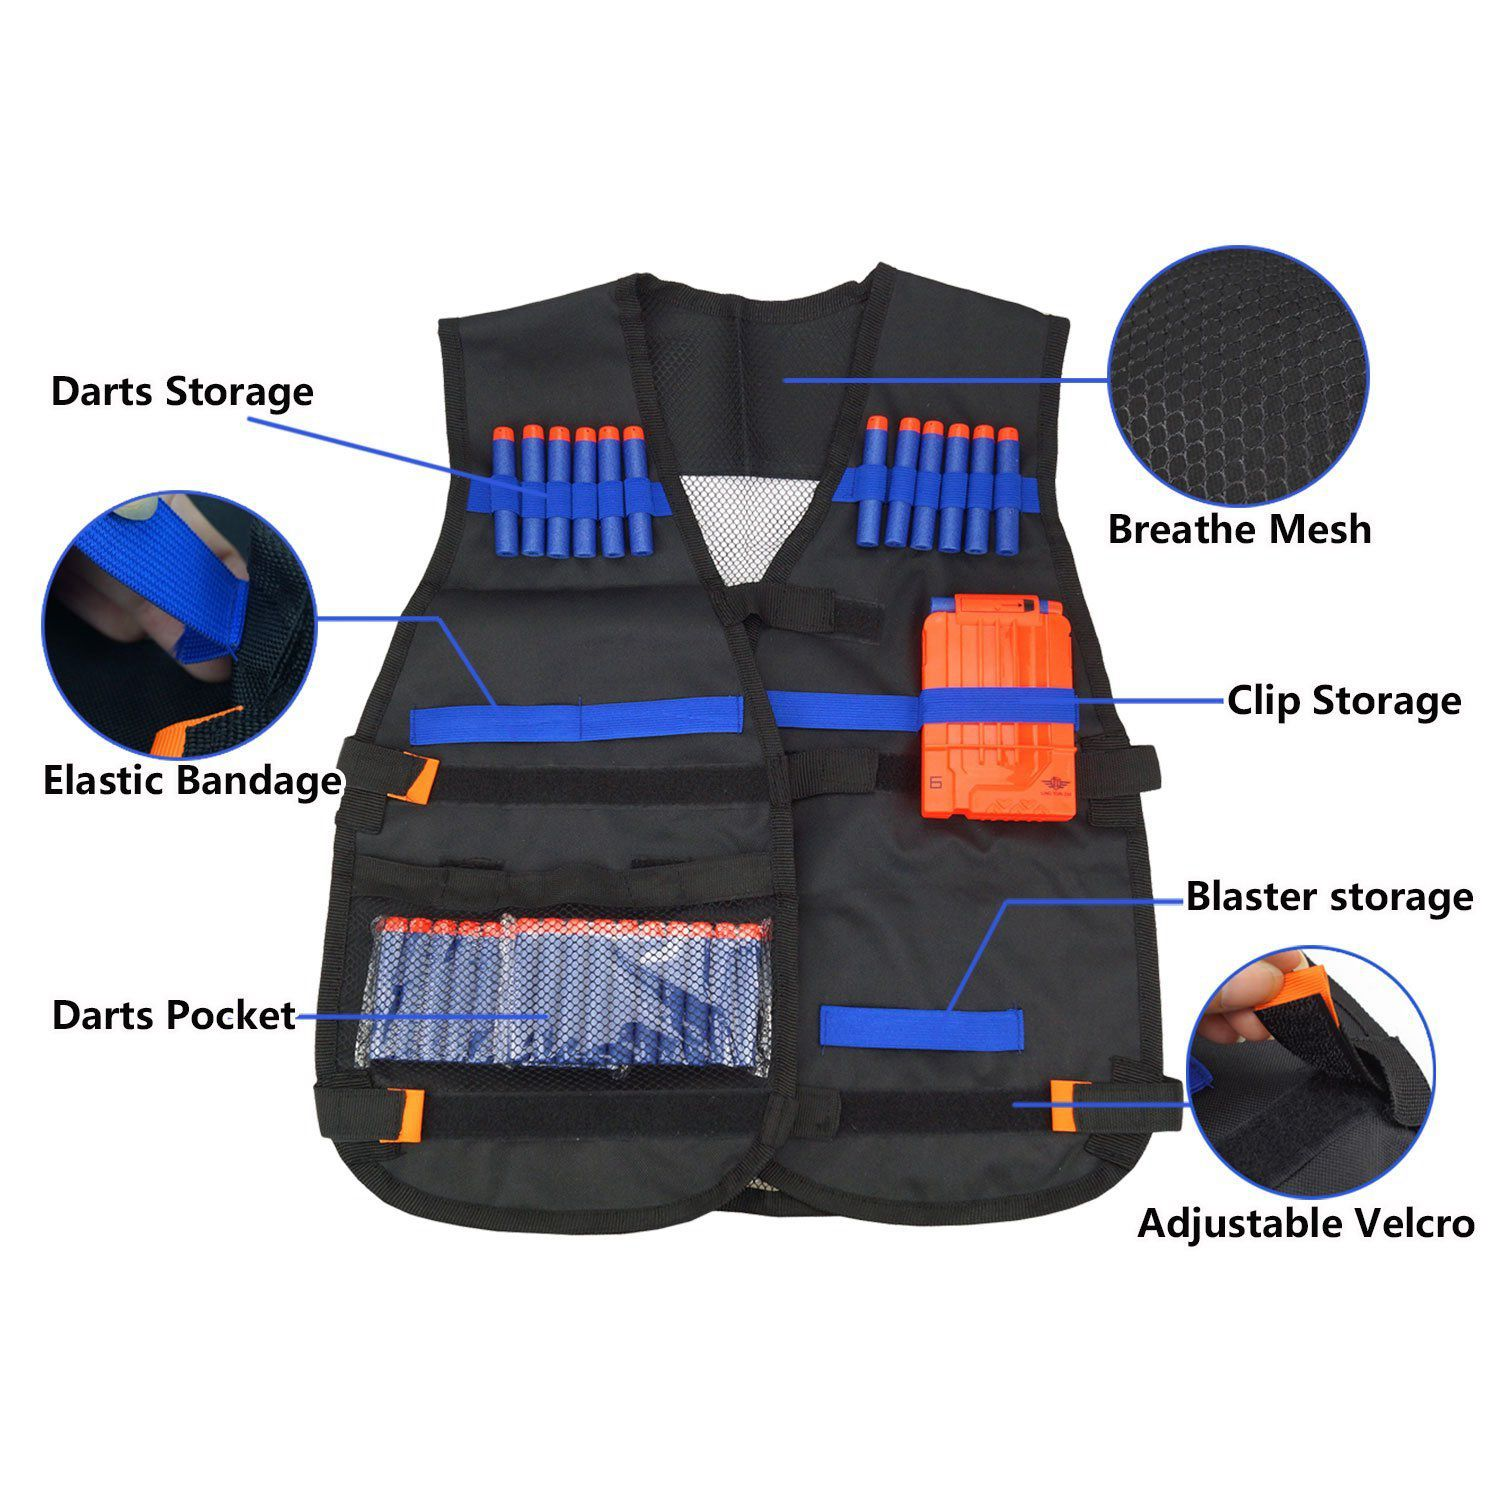 Camping & Hiking 54x47cm Children Kids Black Tactical Vest Jacket Waistcoat Ammo Holder Lite Pistol Bullets Toy Clip Darts For Nerf Dropshipping